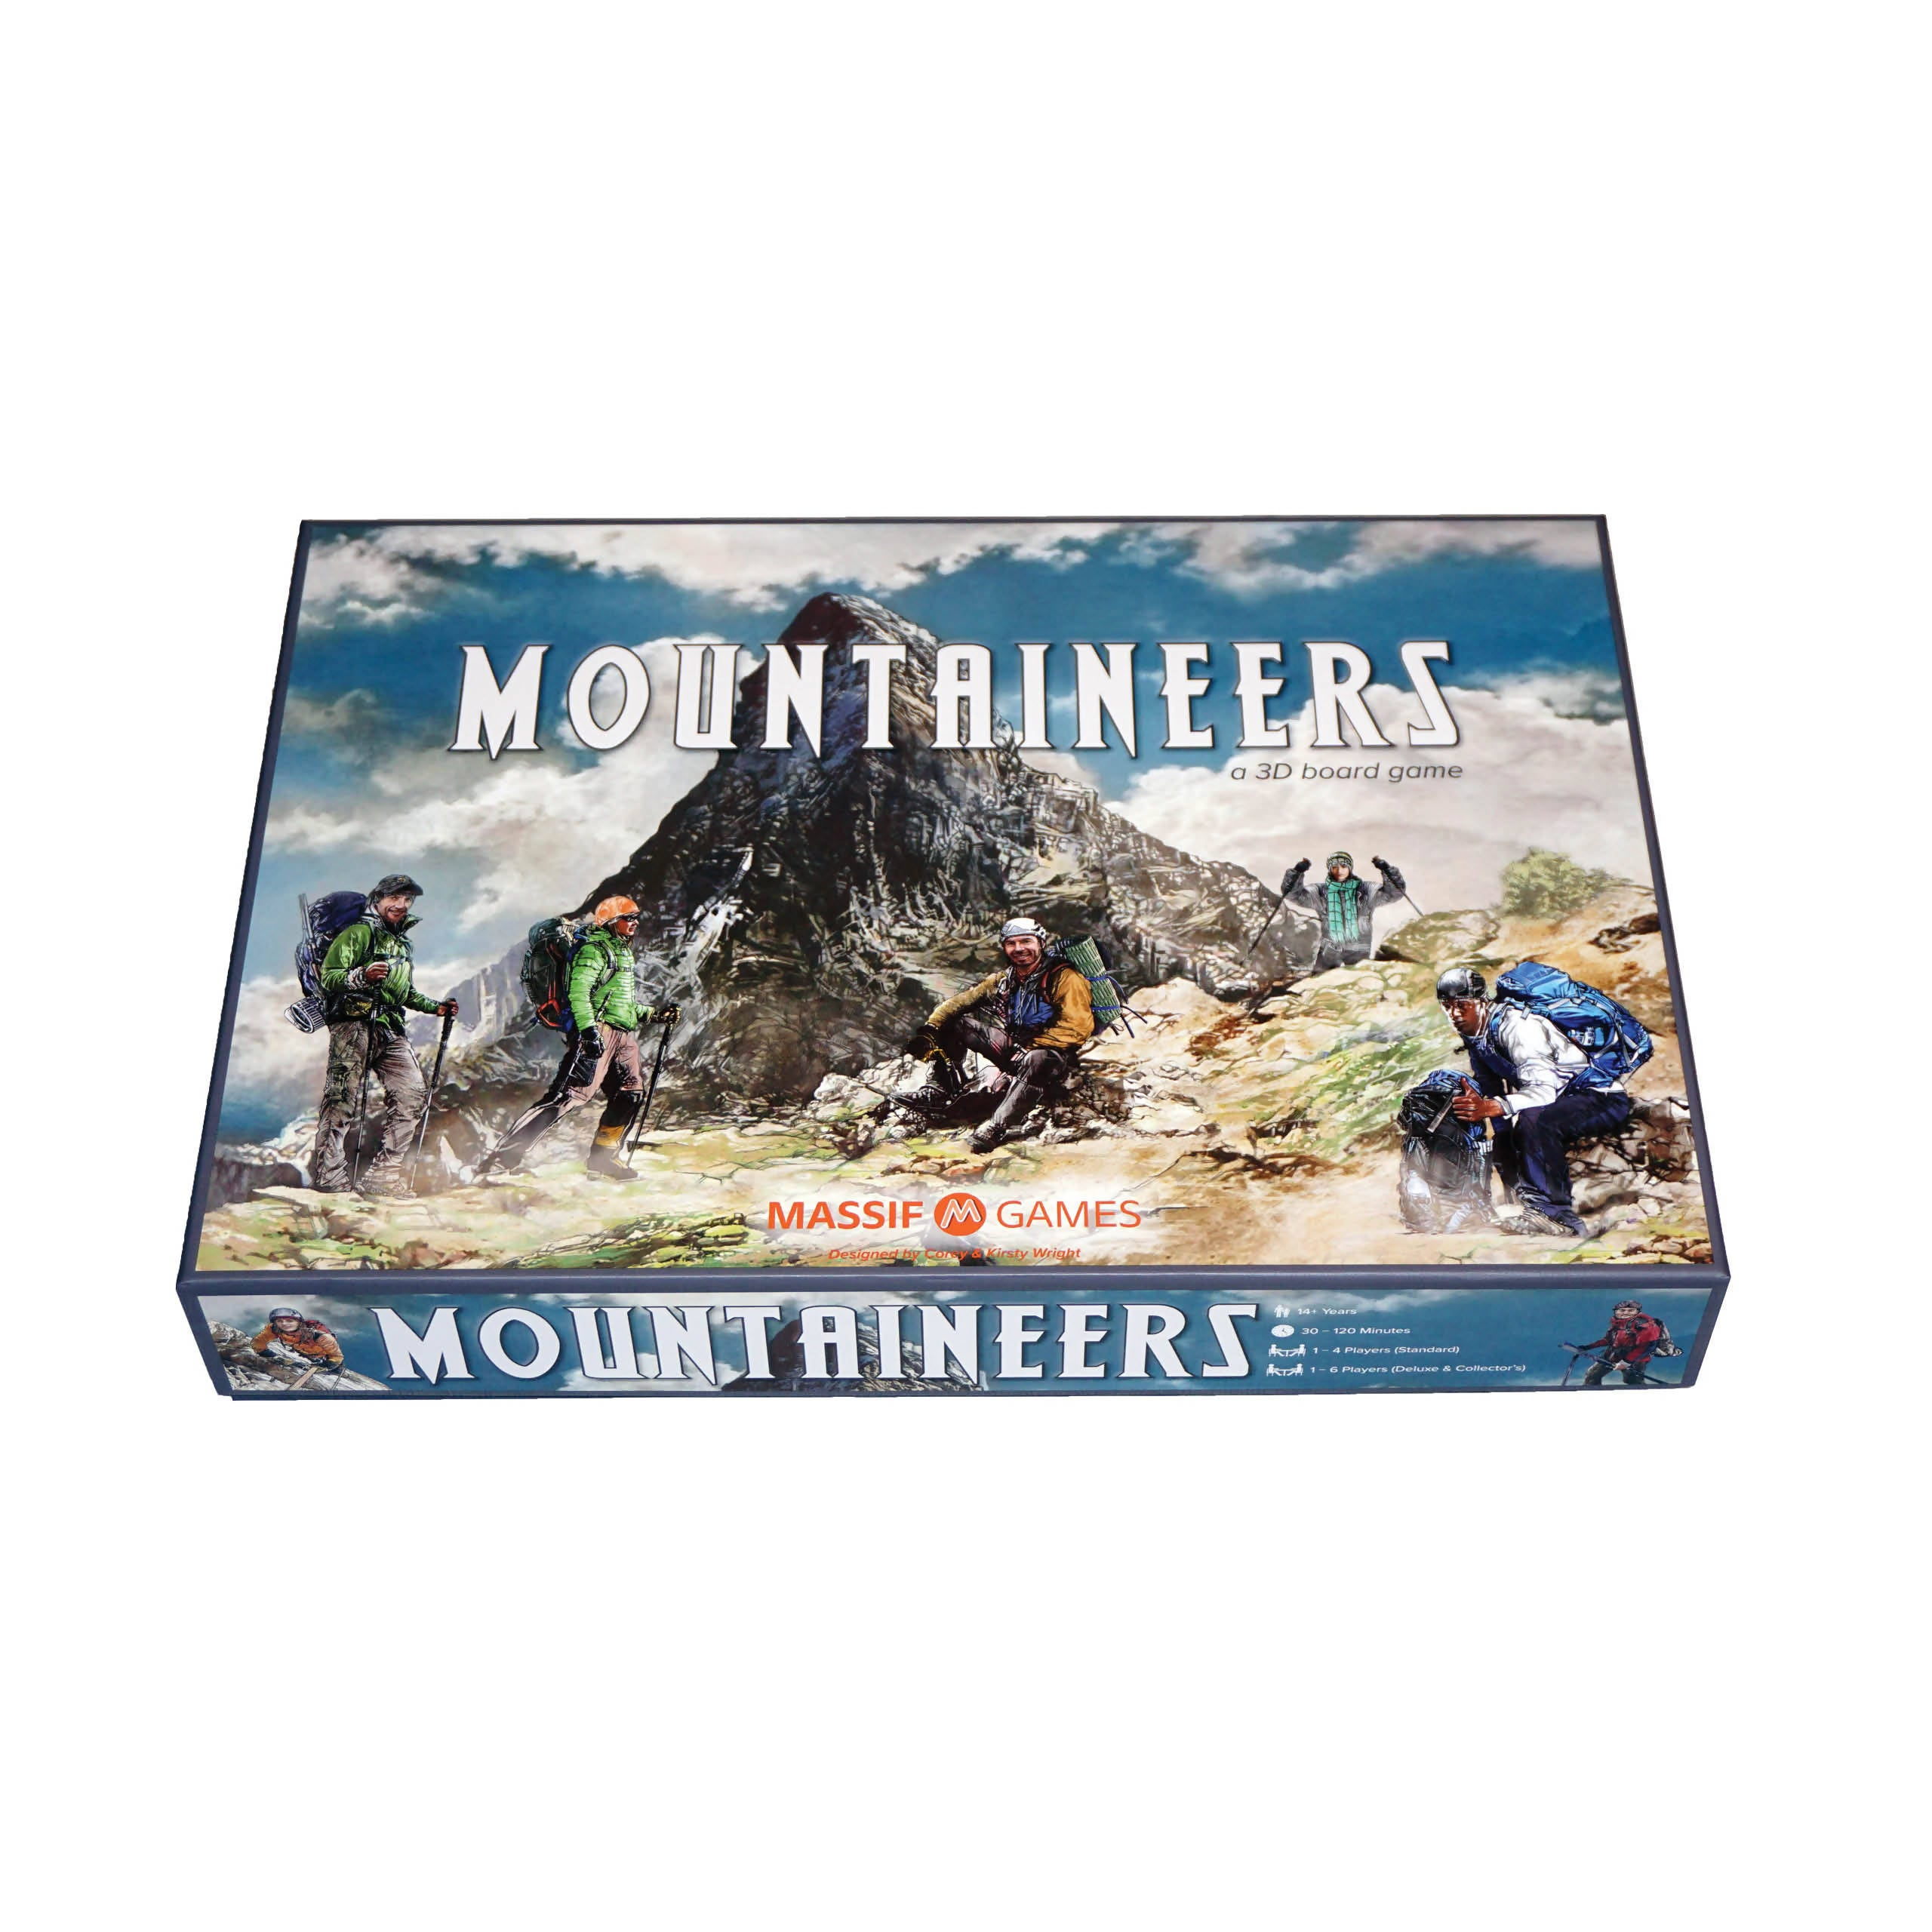 Mountaineers - Collector's Edition